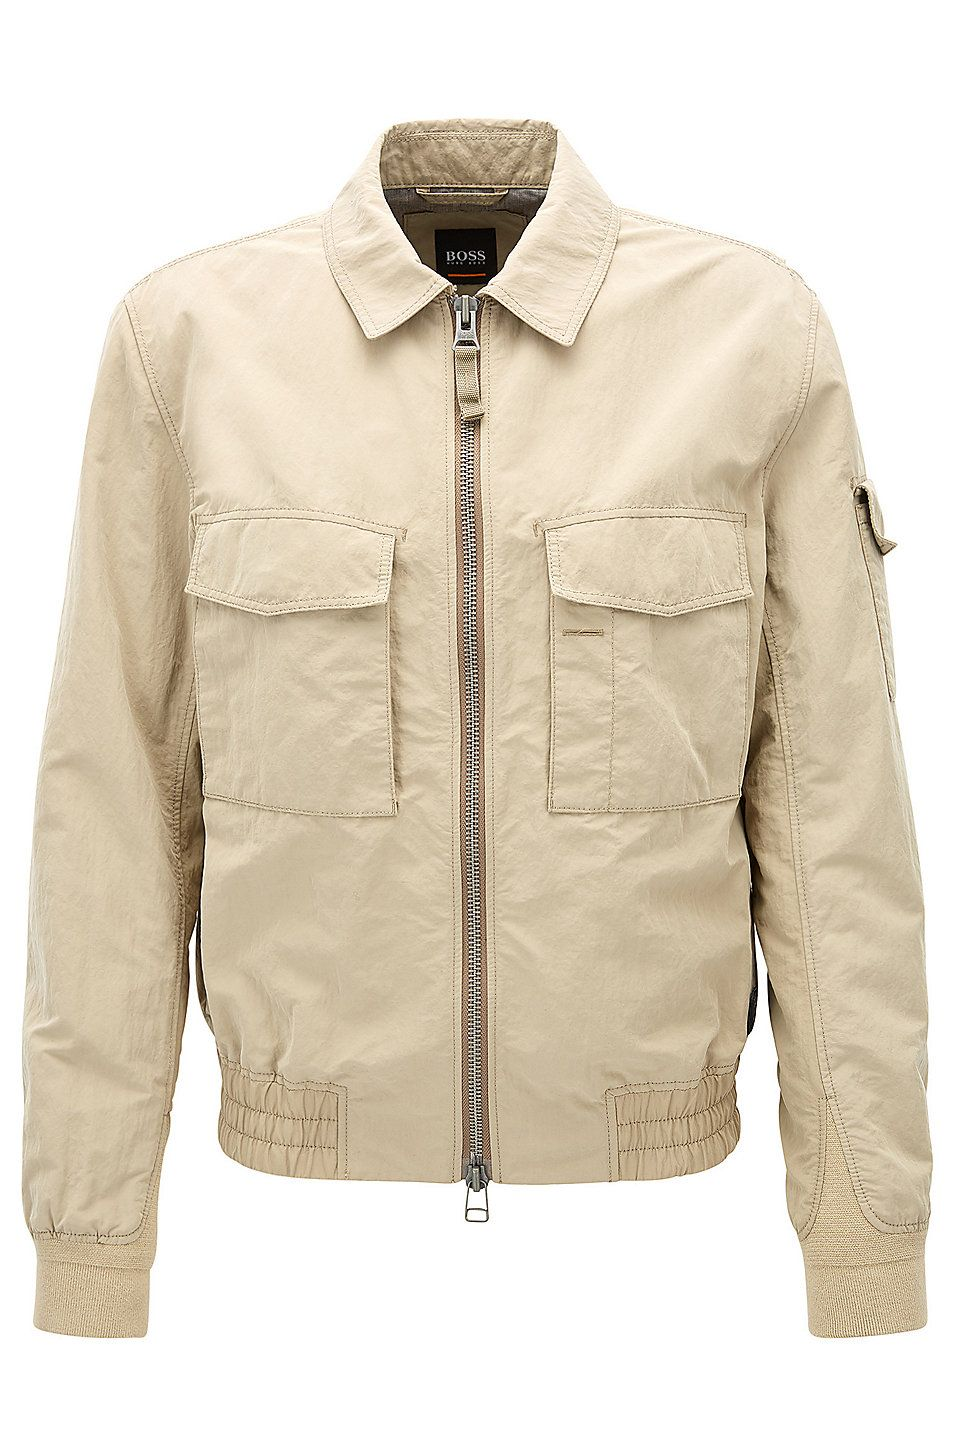 Hugo Boss Regular Fit Jacket In Two Tone Technical Fabric Beige Casual Jackets From Boss For Men In The Official Hugo Bo Jackets Workout Jacket Casual Jacket [ 1456 x 960 Pixel ]